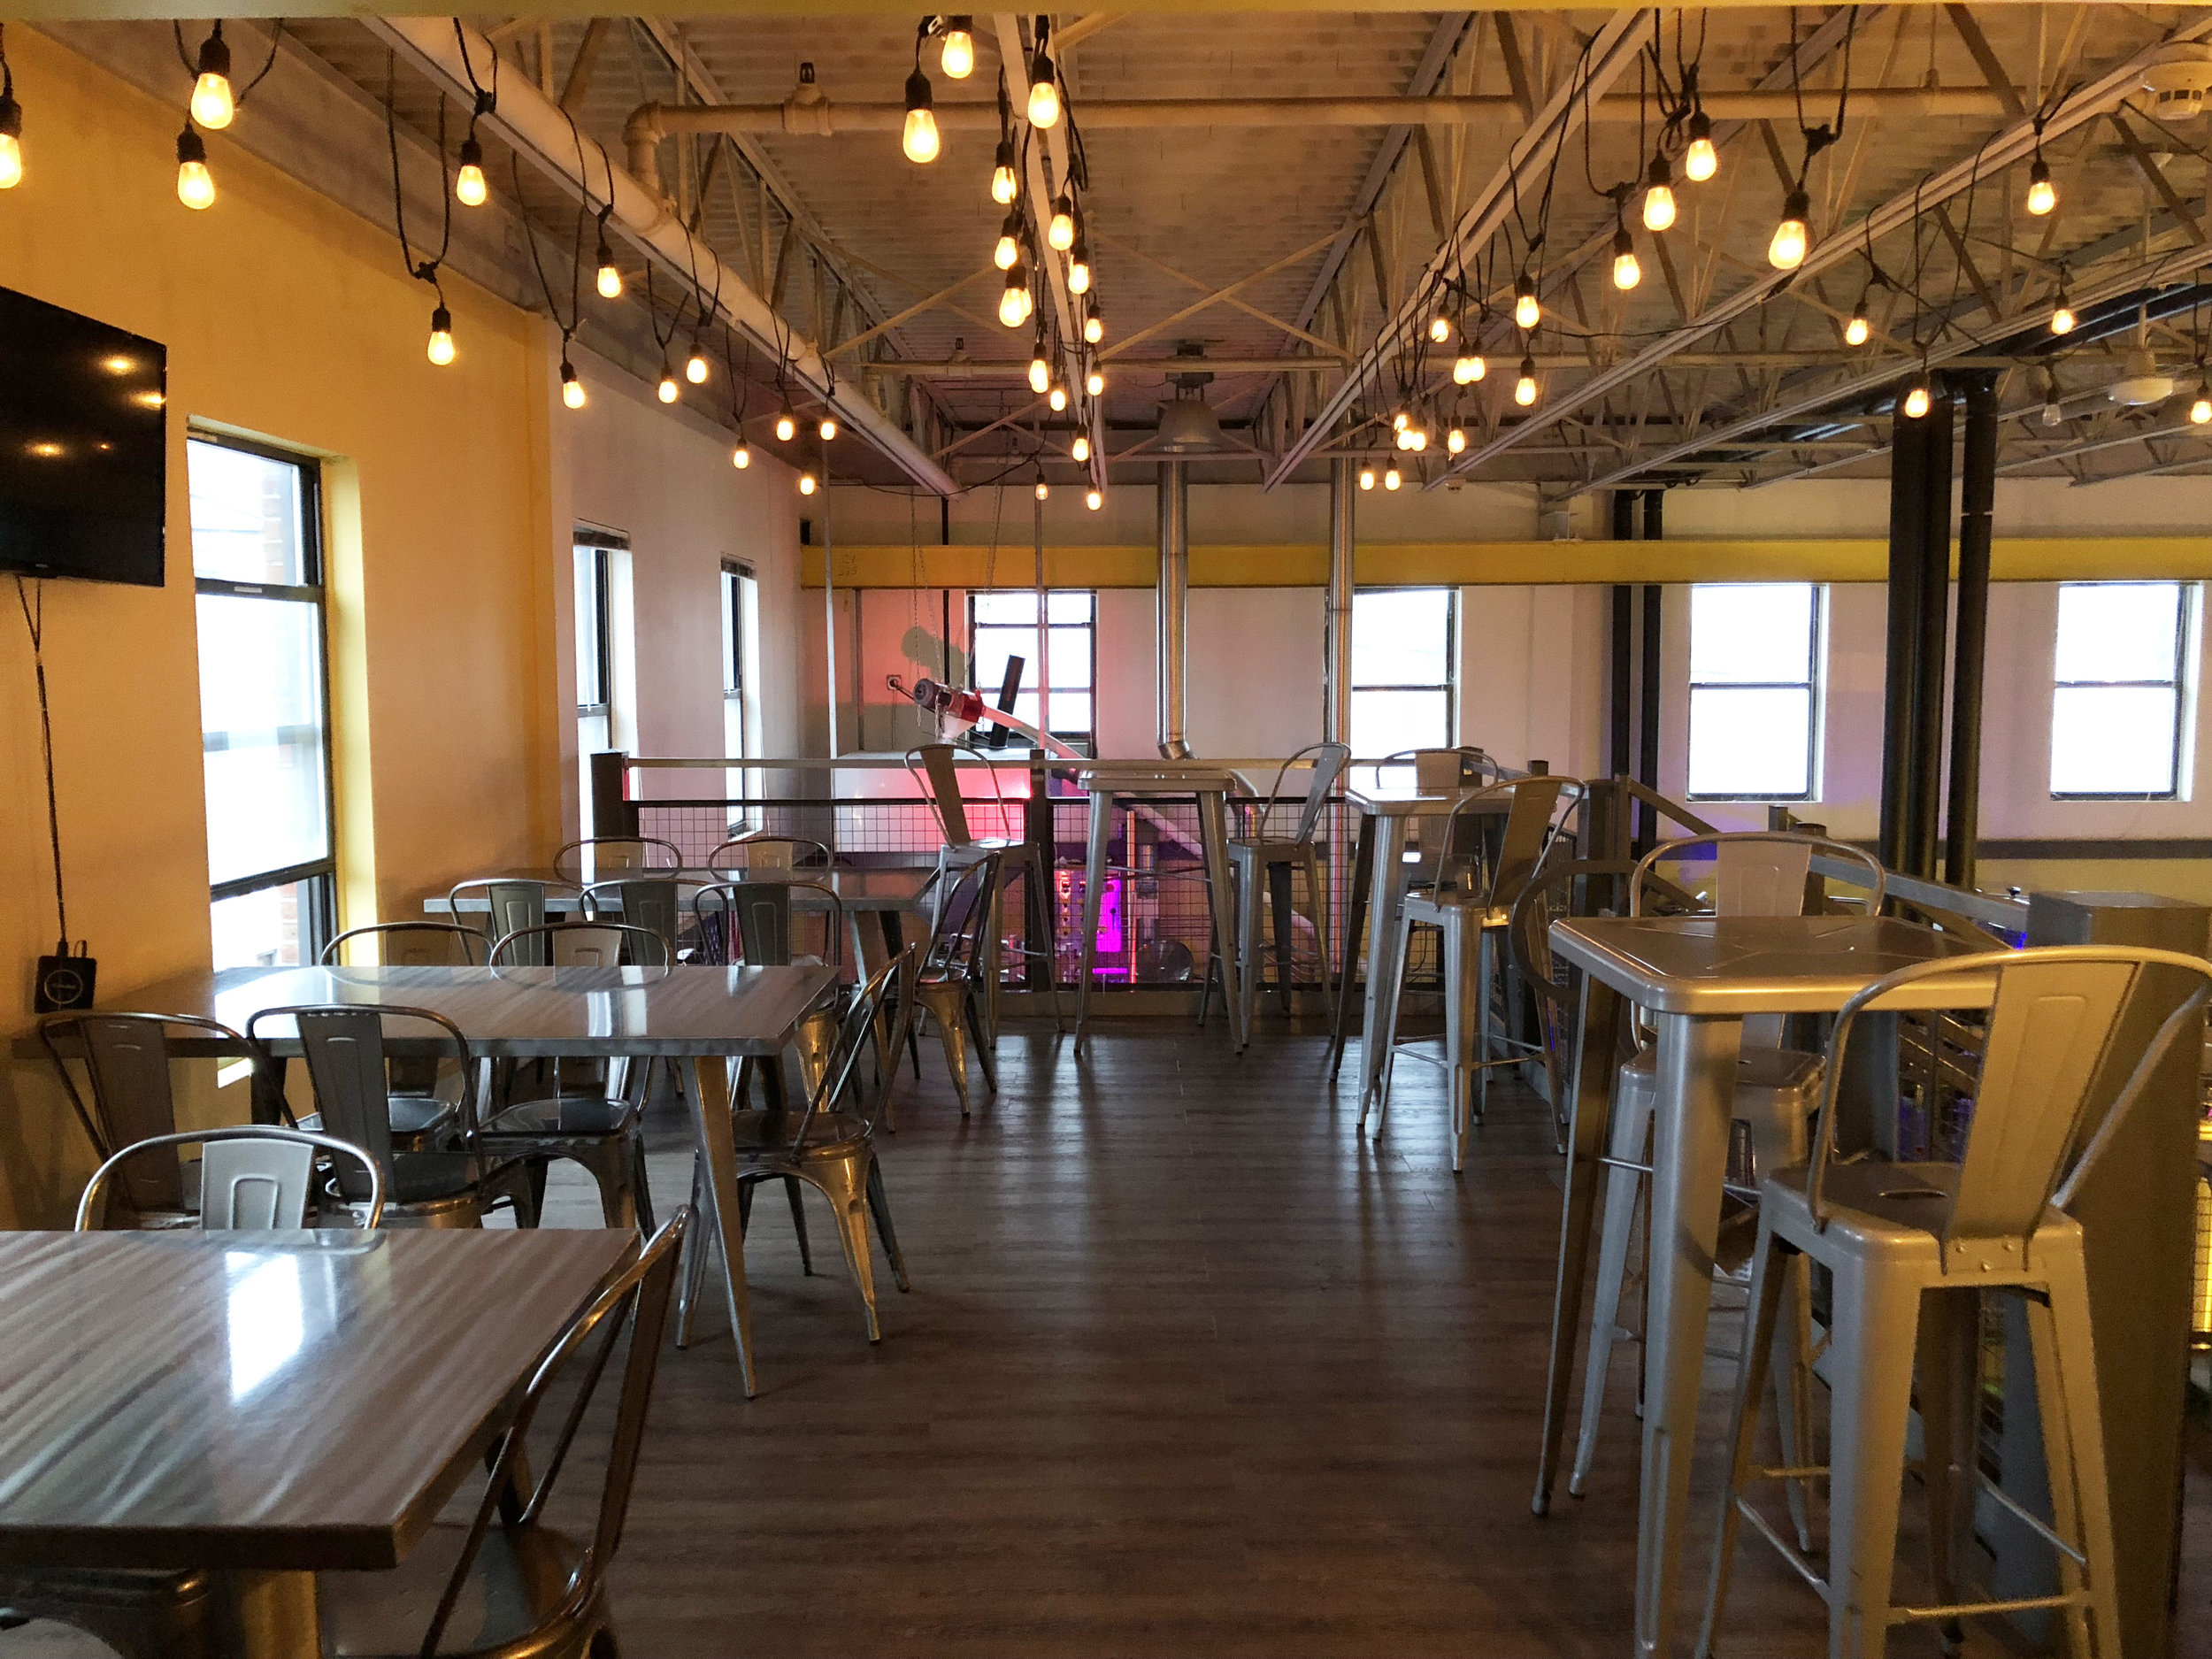 Private Loft & Public Taproom Event Spaces - Unique brewery event spaces for any occasion or celebration. Good food, outstanding service, amazing memories.